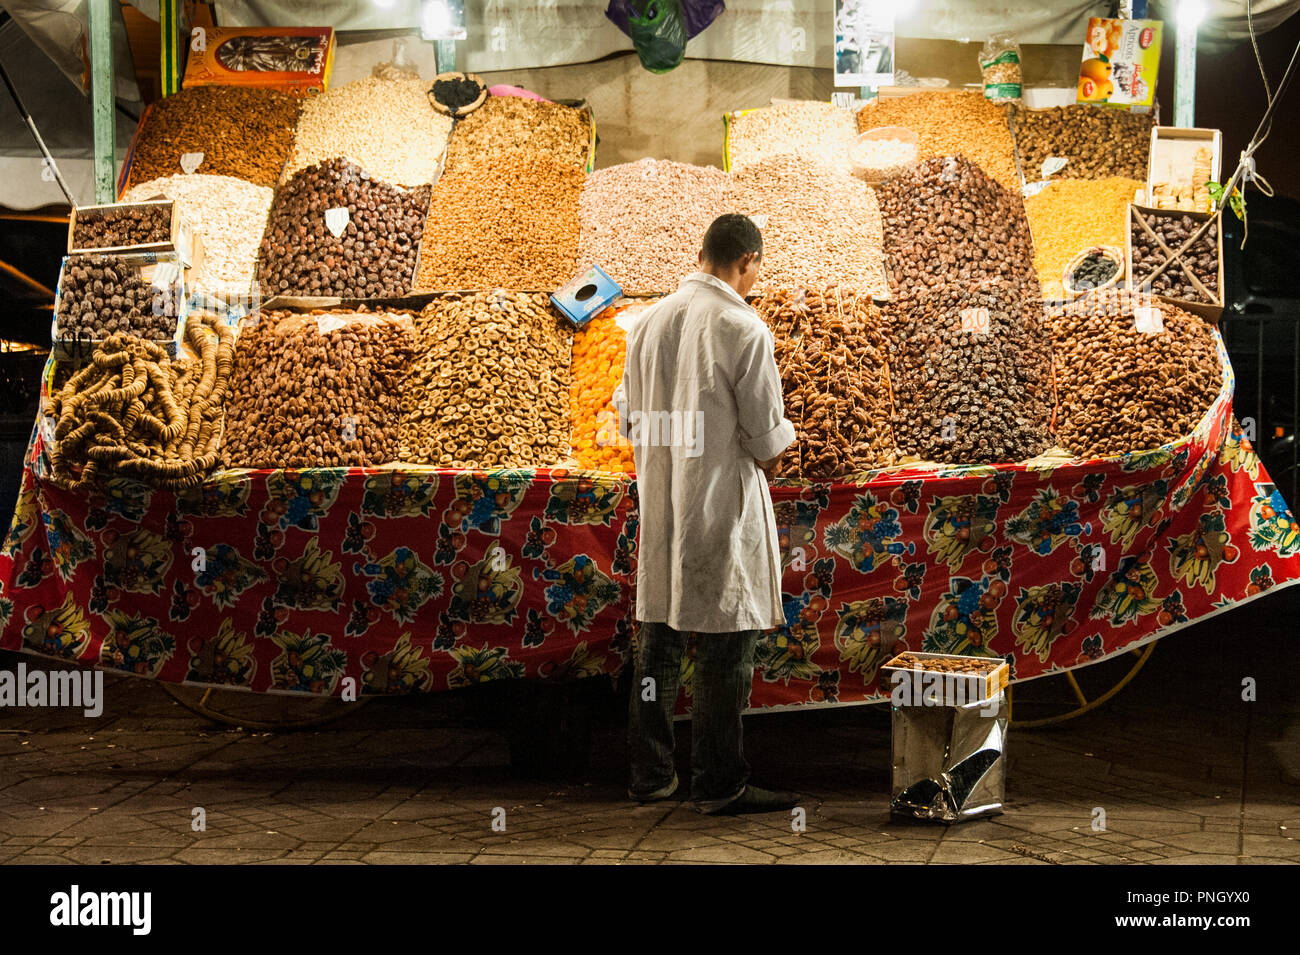 25-02-11. Marrakech, Morocco. A stall holder selling dates and dried apricots in Jemaa el-Fna at night. It is a large public square with small merchan - Stock Image